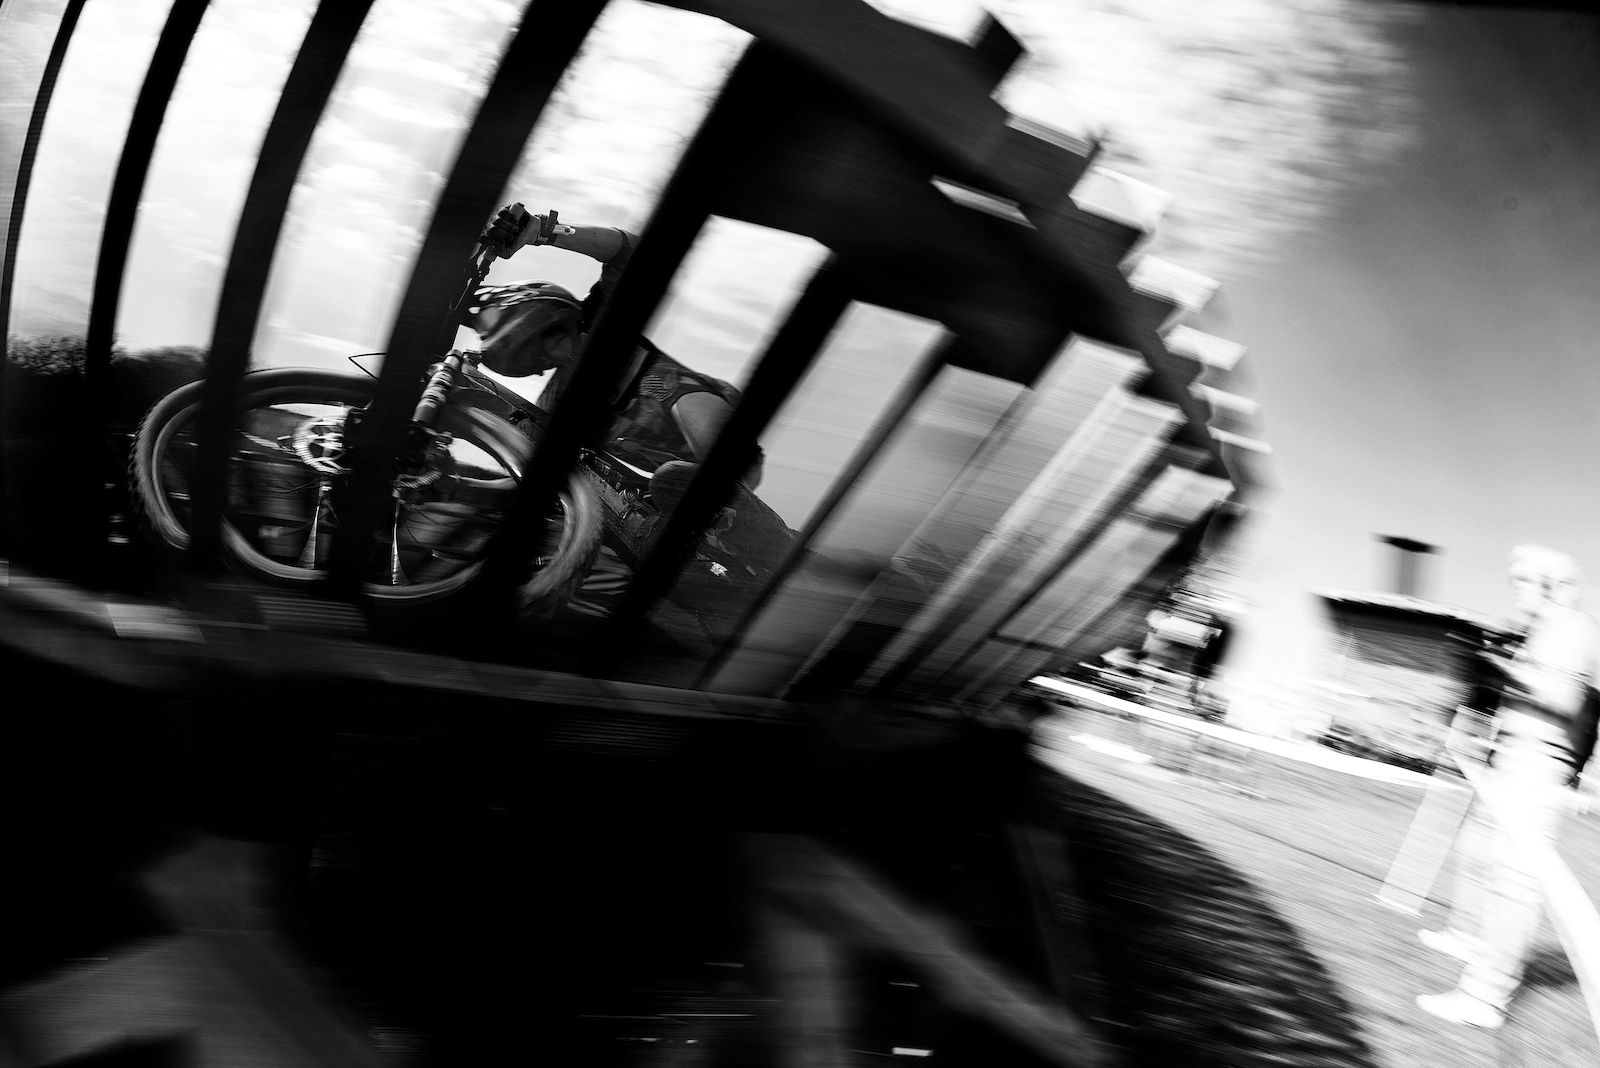 paolofurlanphoto - Unknown rider in Trieste Italy